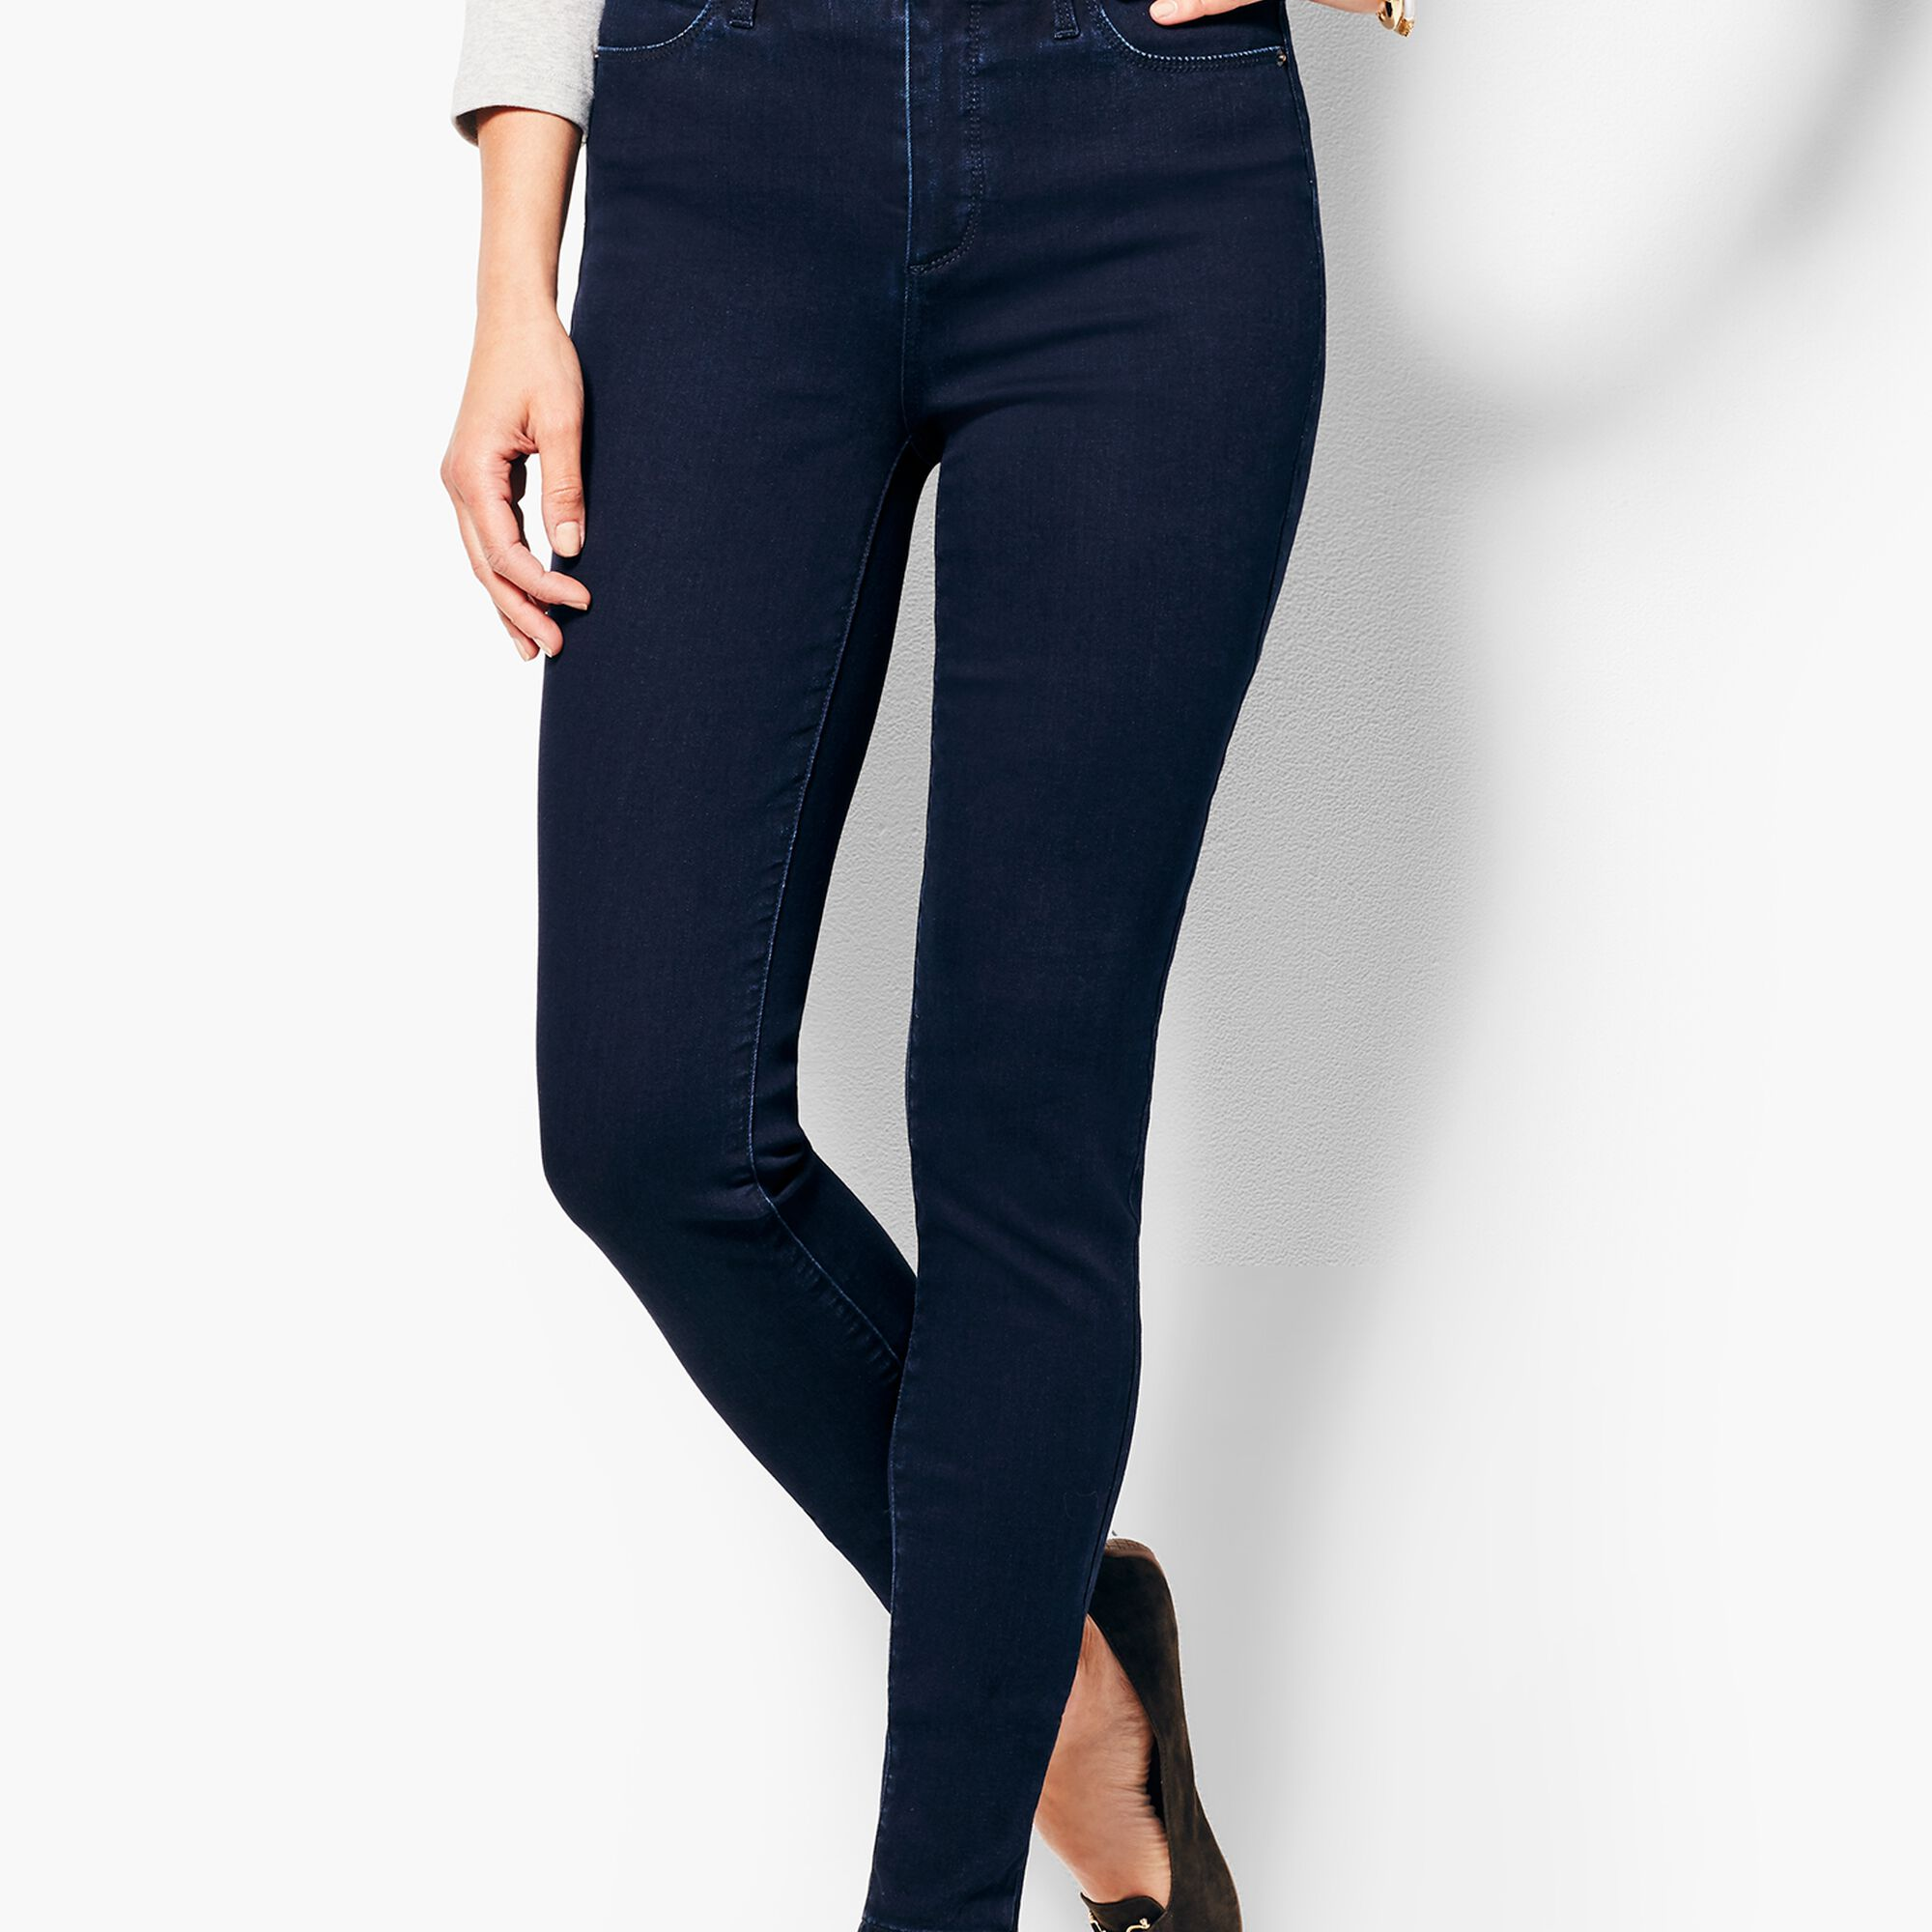 Images. Comfort Stretch Denim Jeggings - Rinse Wash 553b36284ce